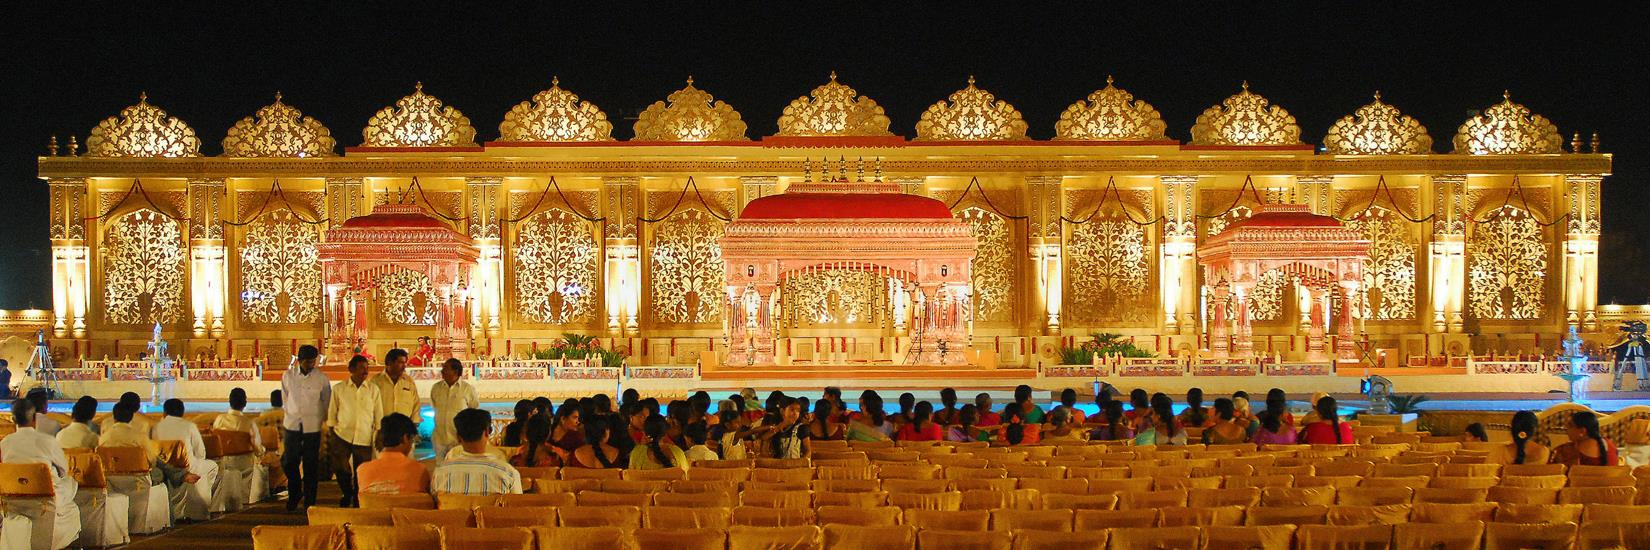 Best Stage Decorator In Coimbatore, BestWedding Decorator In Coimbatore, Event Organiser In Coimbatore, Best Baloon Decorator In Coimbatore - by SRI DIVYA DECORATOR & SOUND SERVICE, Coimbatore